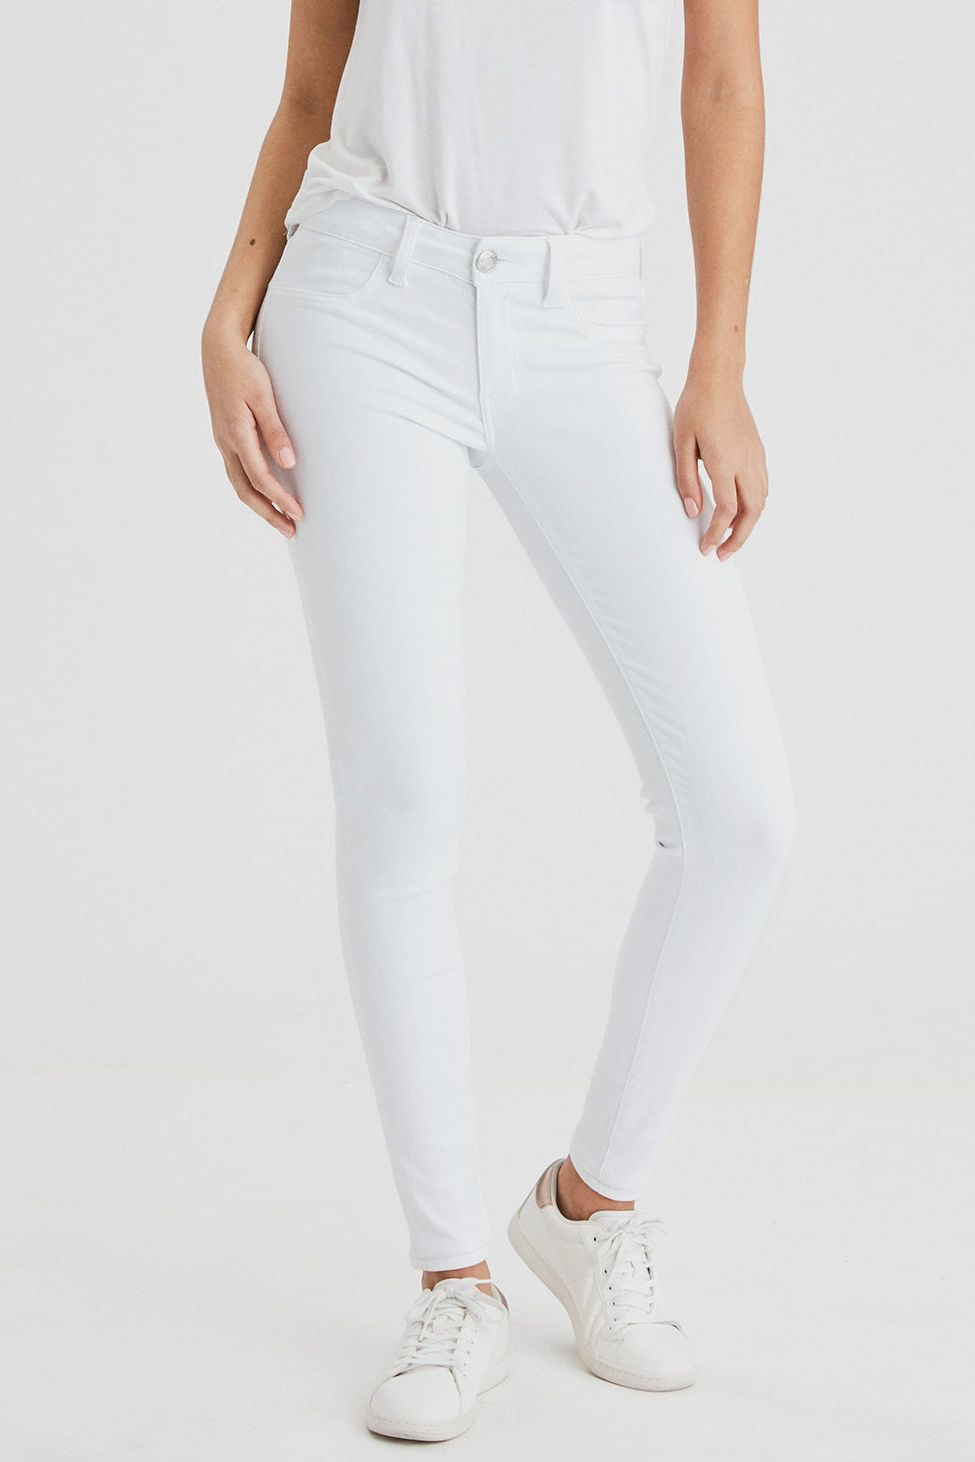 The Best White Jeans For Standing Out Year-Round